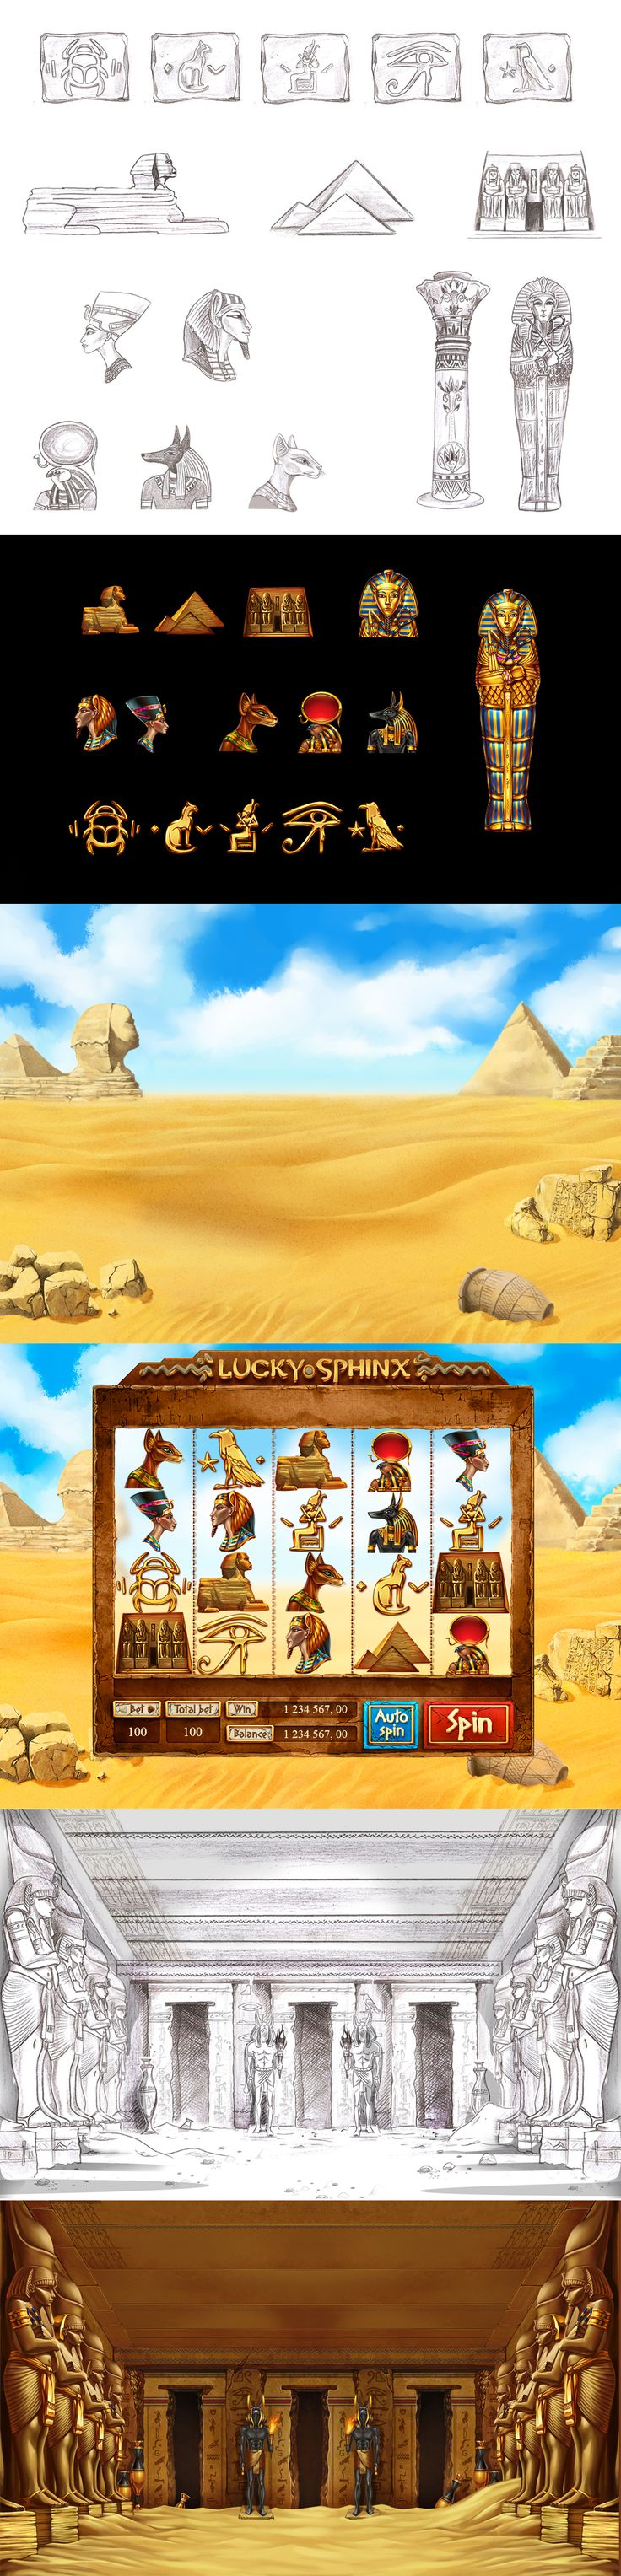 "Graphic design of symbols, icons and interface for the game slot-machine ""Lucky sphinx"" This slot-machine was made in the ancient Egyptian theme and was inhabited by ancient gods and pharaohs. Enjoy! http://slotopaint.com/"